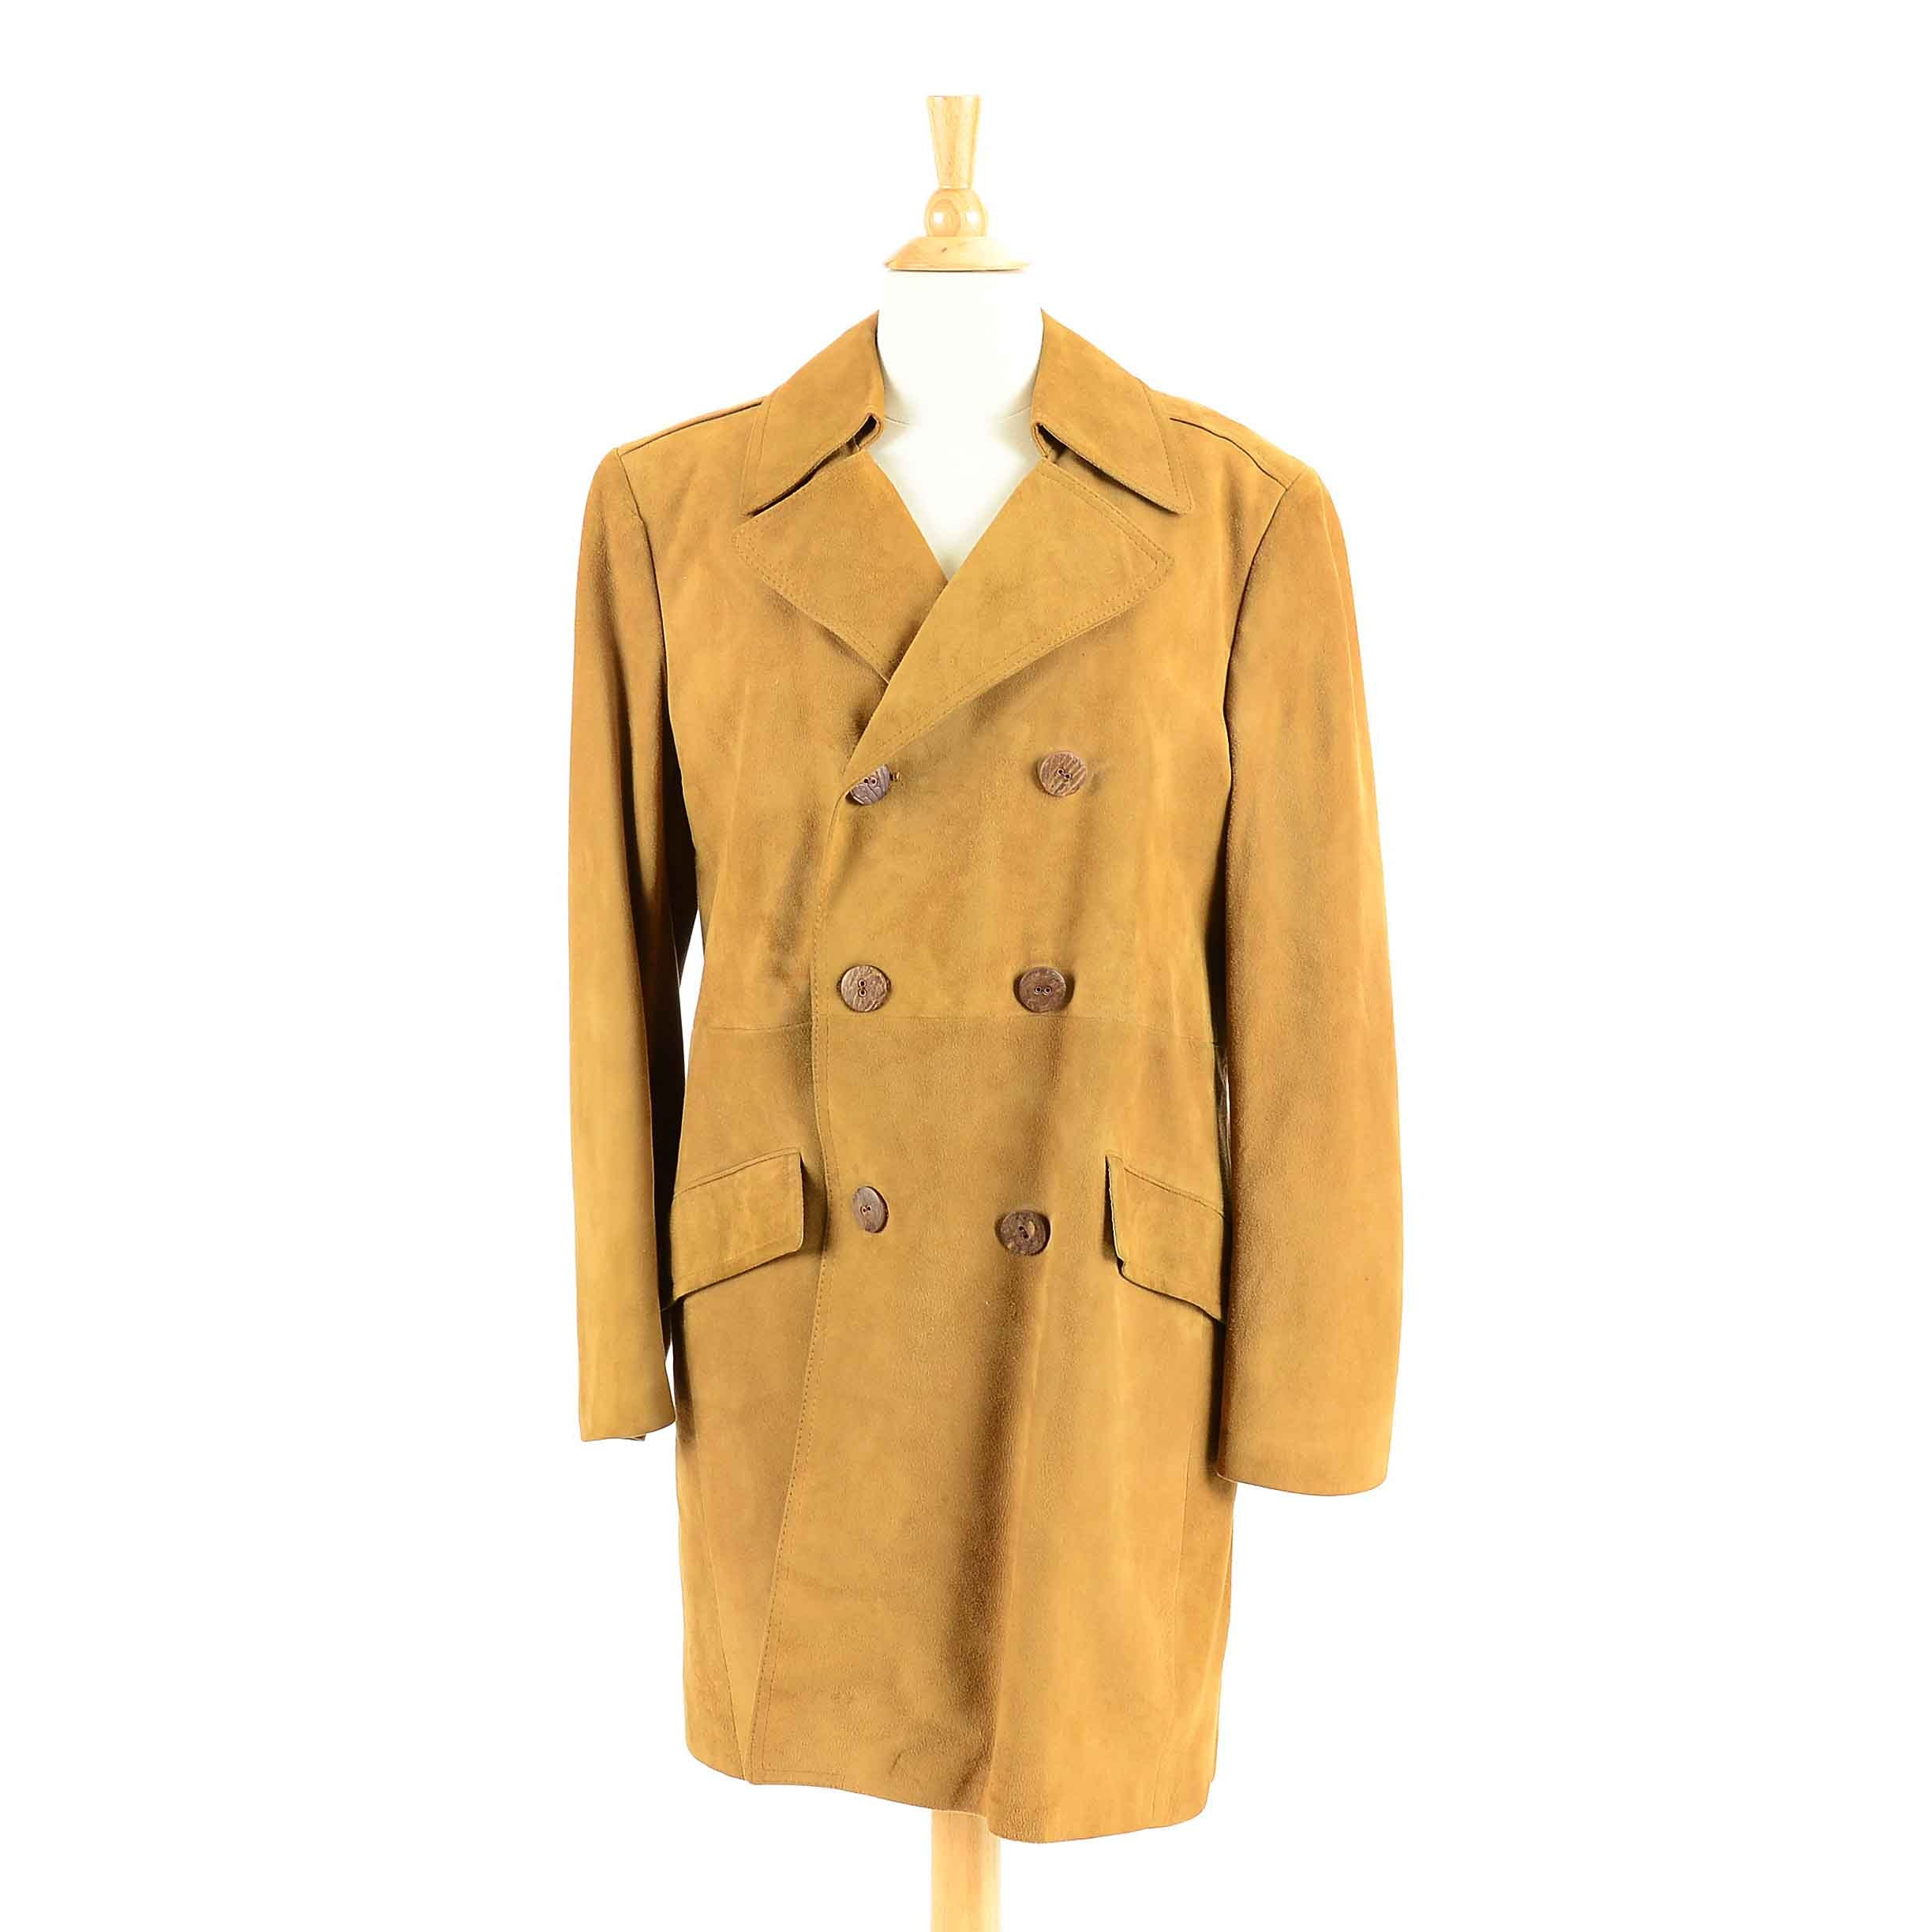 Cortefiel Suede Double-Breasted Coat, Made in Spain